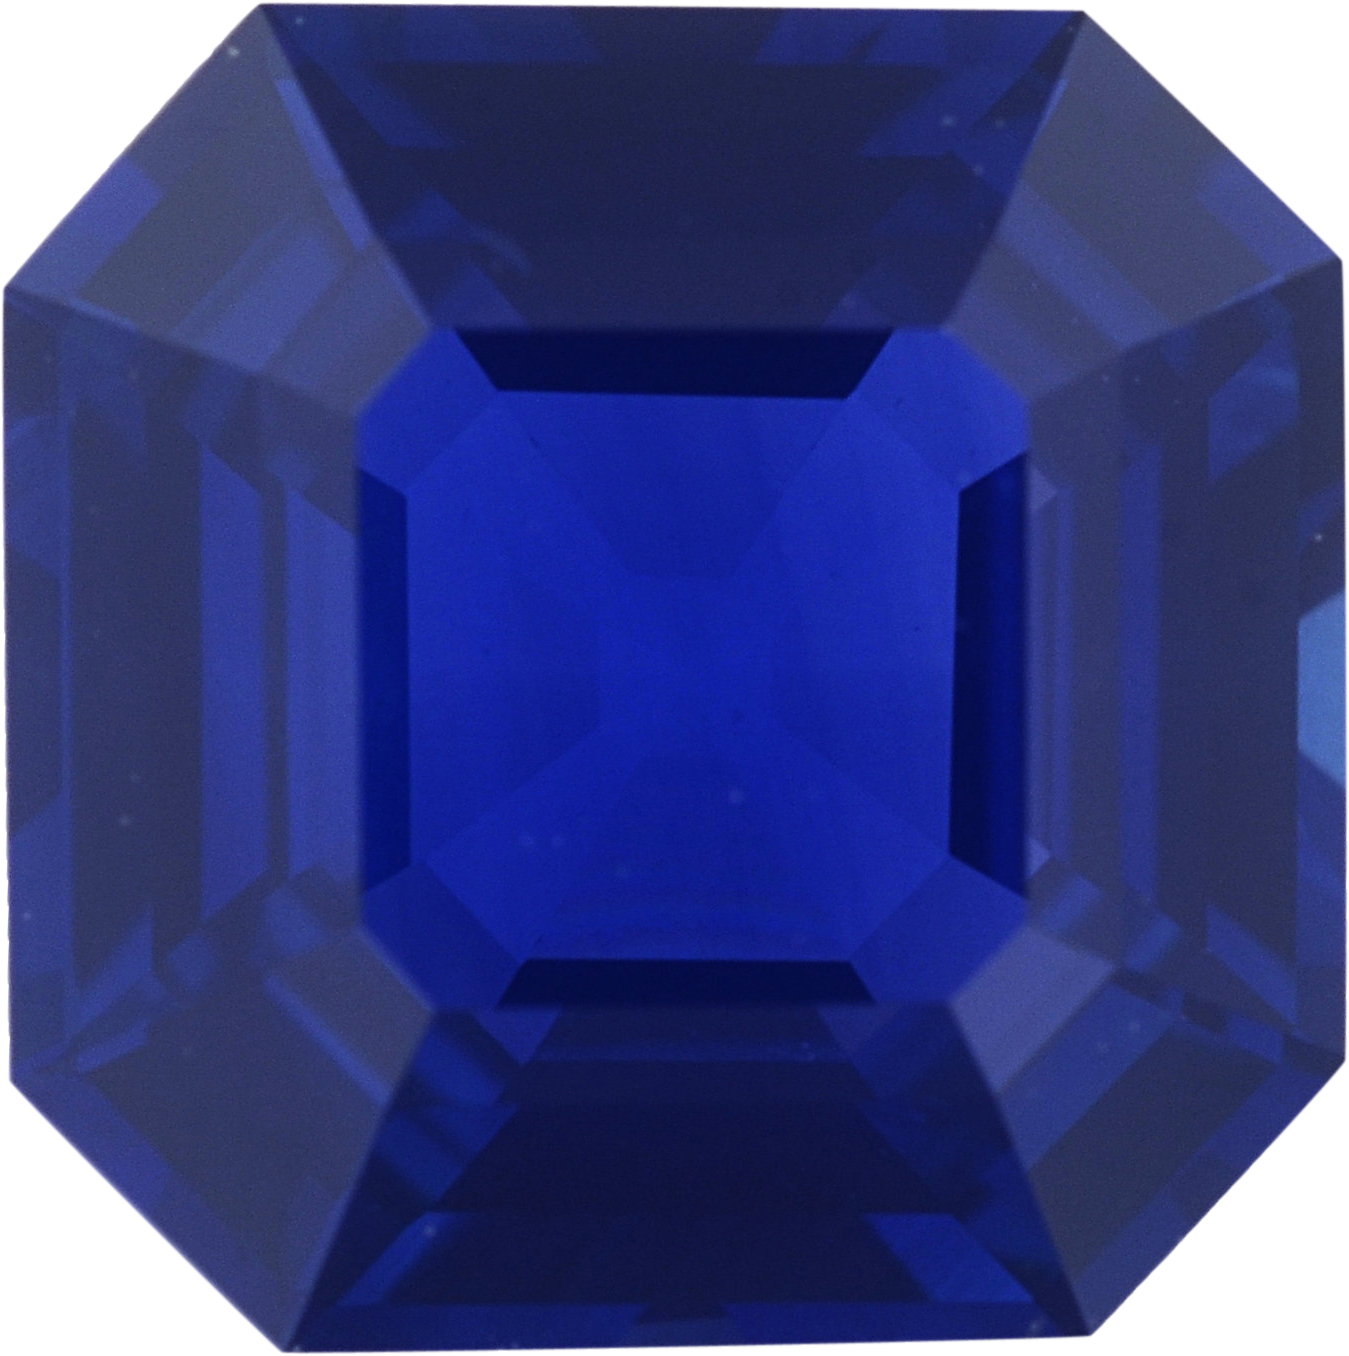 Magnificent Sapphire Loose Gem in Modified Square Cut,  Violet Blue, 6.77 x 6.75  mm, 1.55 Carats